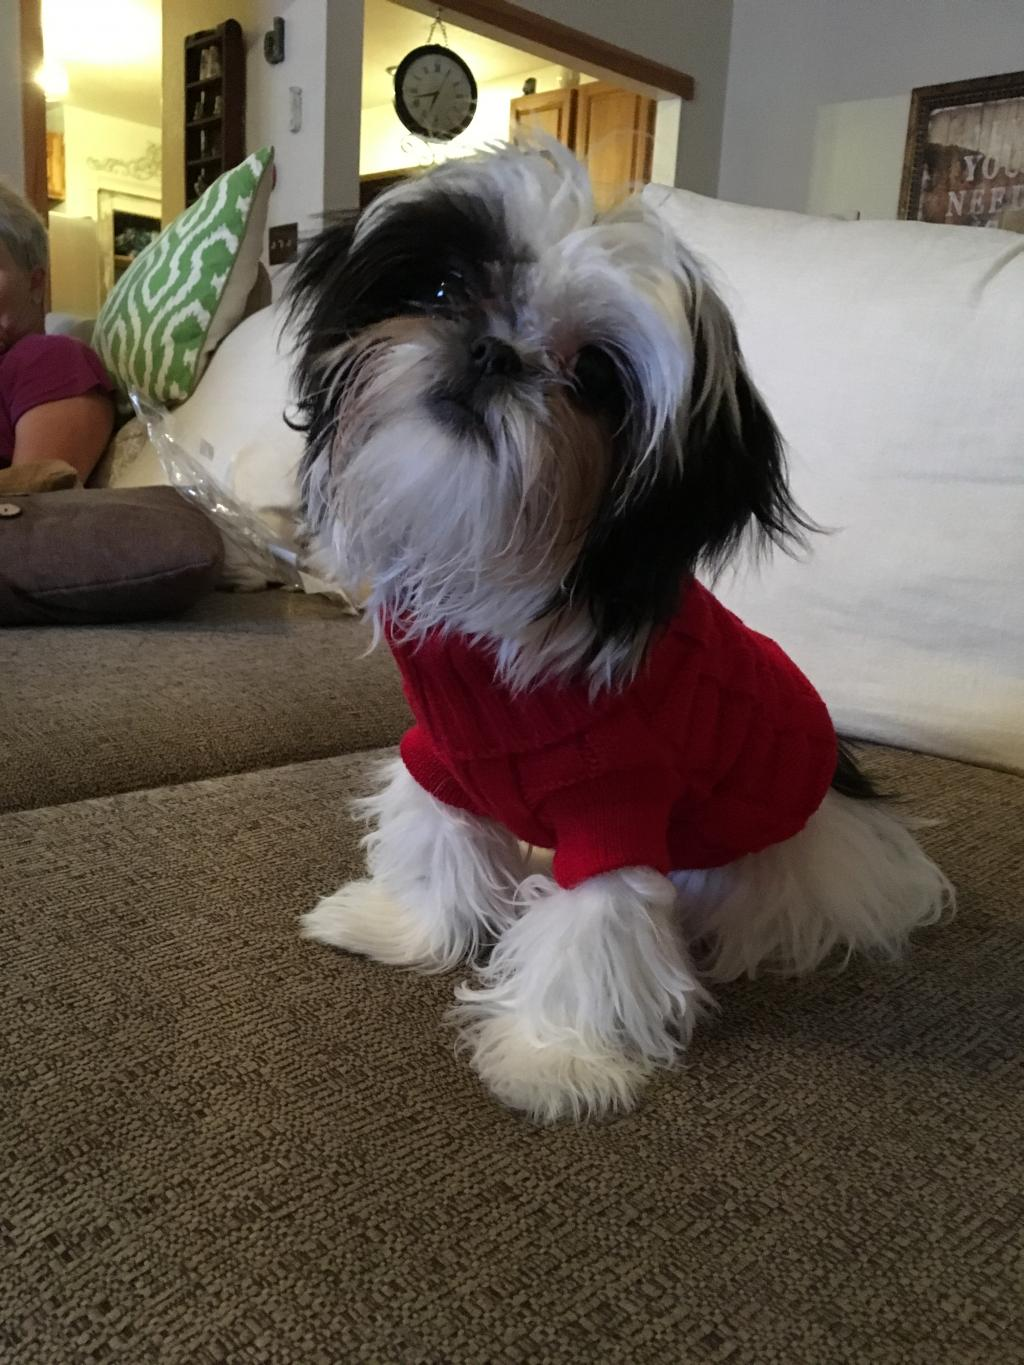 Does A Shih Tzu Puppy Grow Out Of Her Cottony Undercoat That Gets